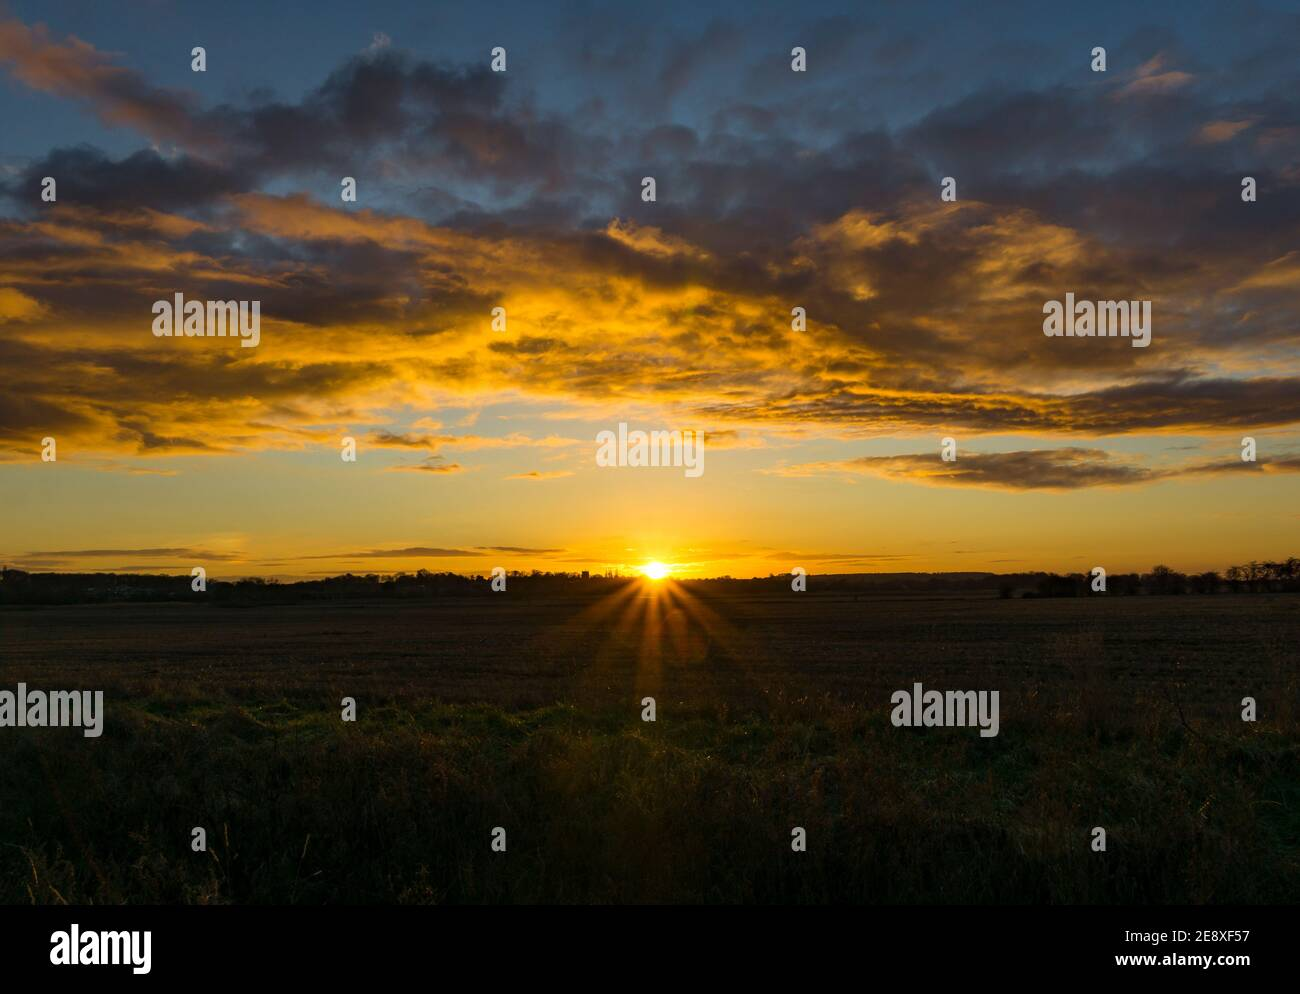 sunset-over-lincolnshire-2E8XF57.jpg